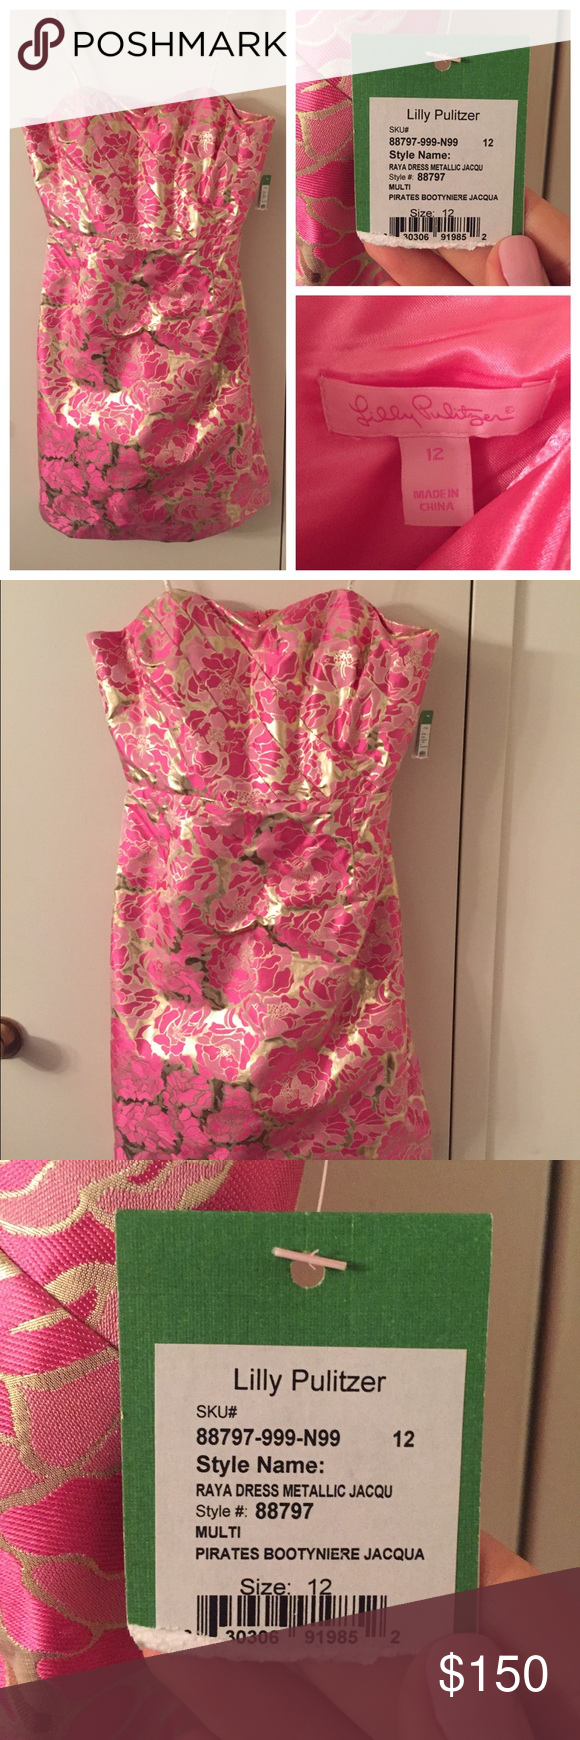 fb9267f8be0 Lilly Pulitzer size 12 Raya dress NWT Metallic pink   gold strapless  jacquard party dress in Pirate s Bootyniere print. Size 12.